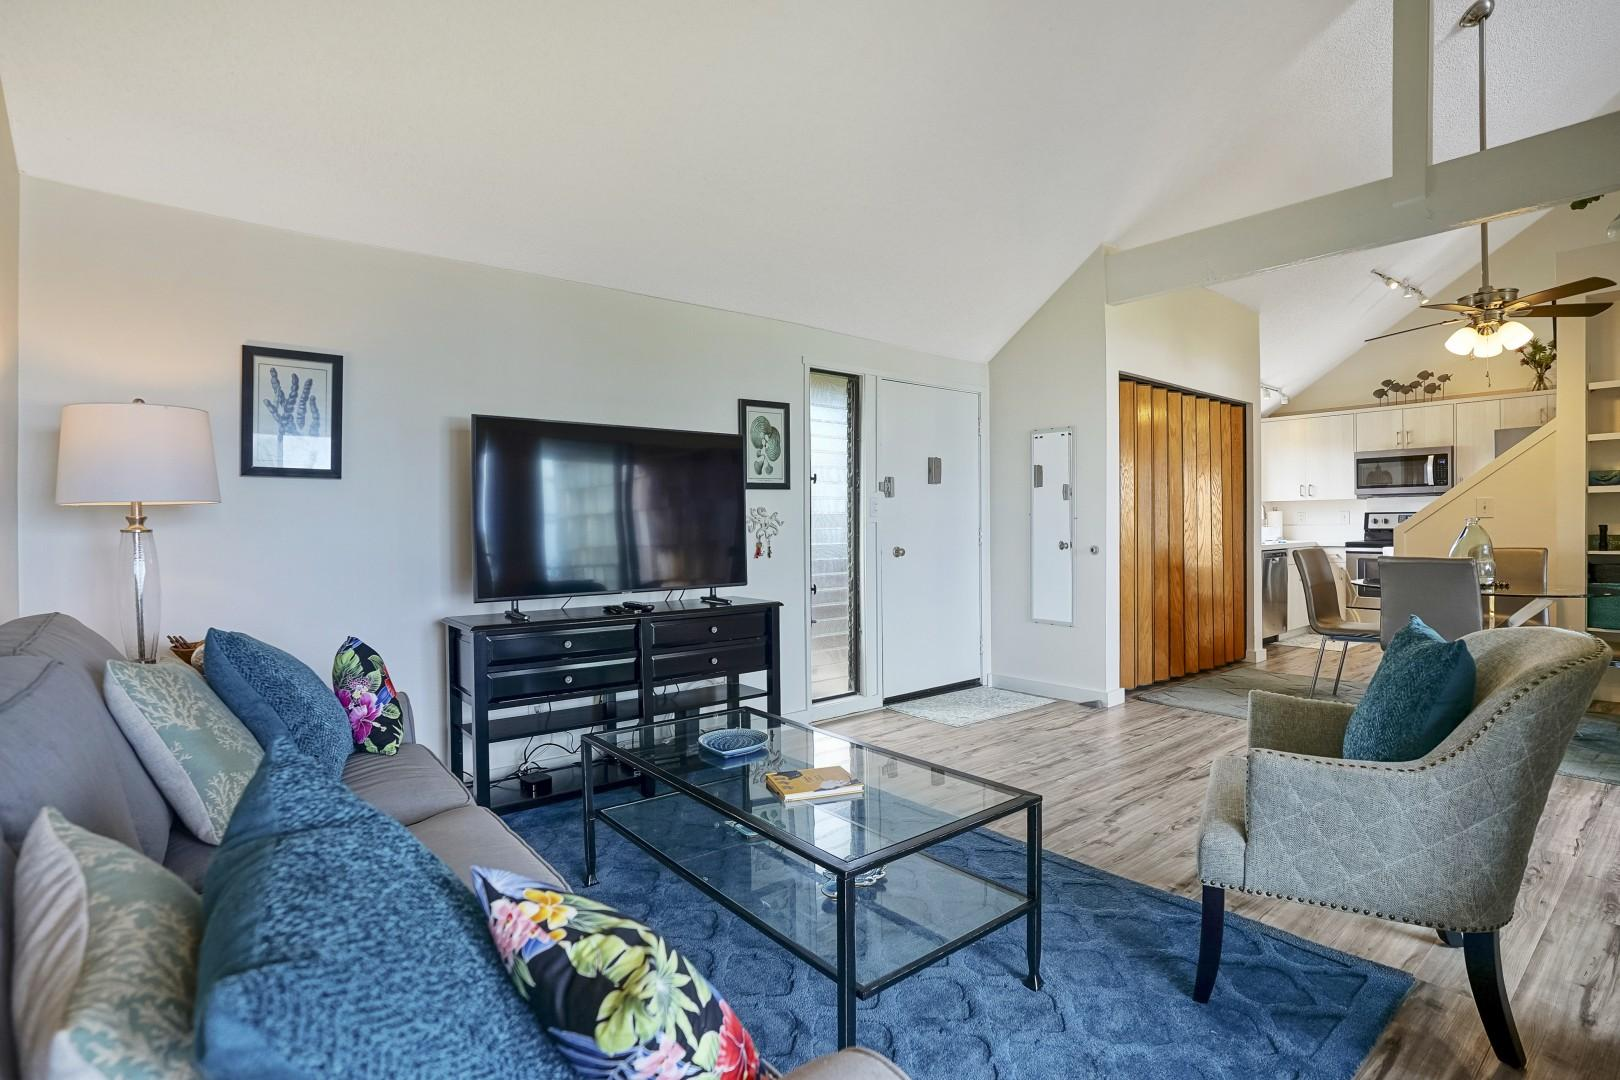 Open layout, beautiful decor, and a large television